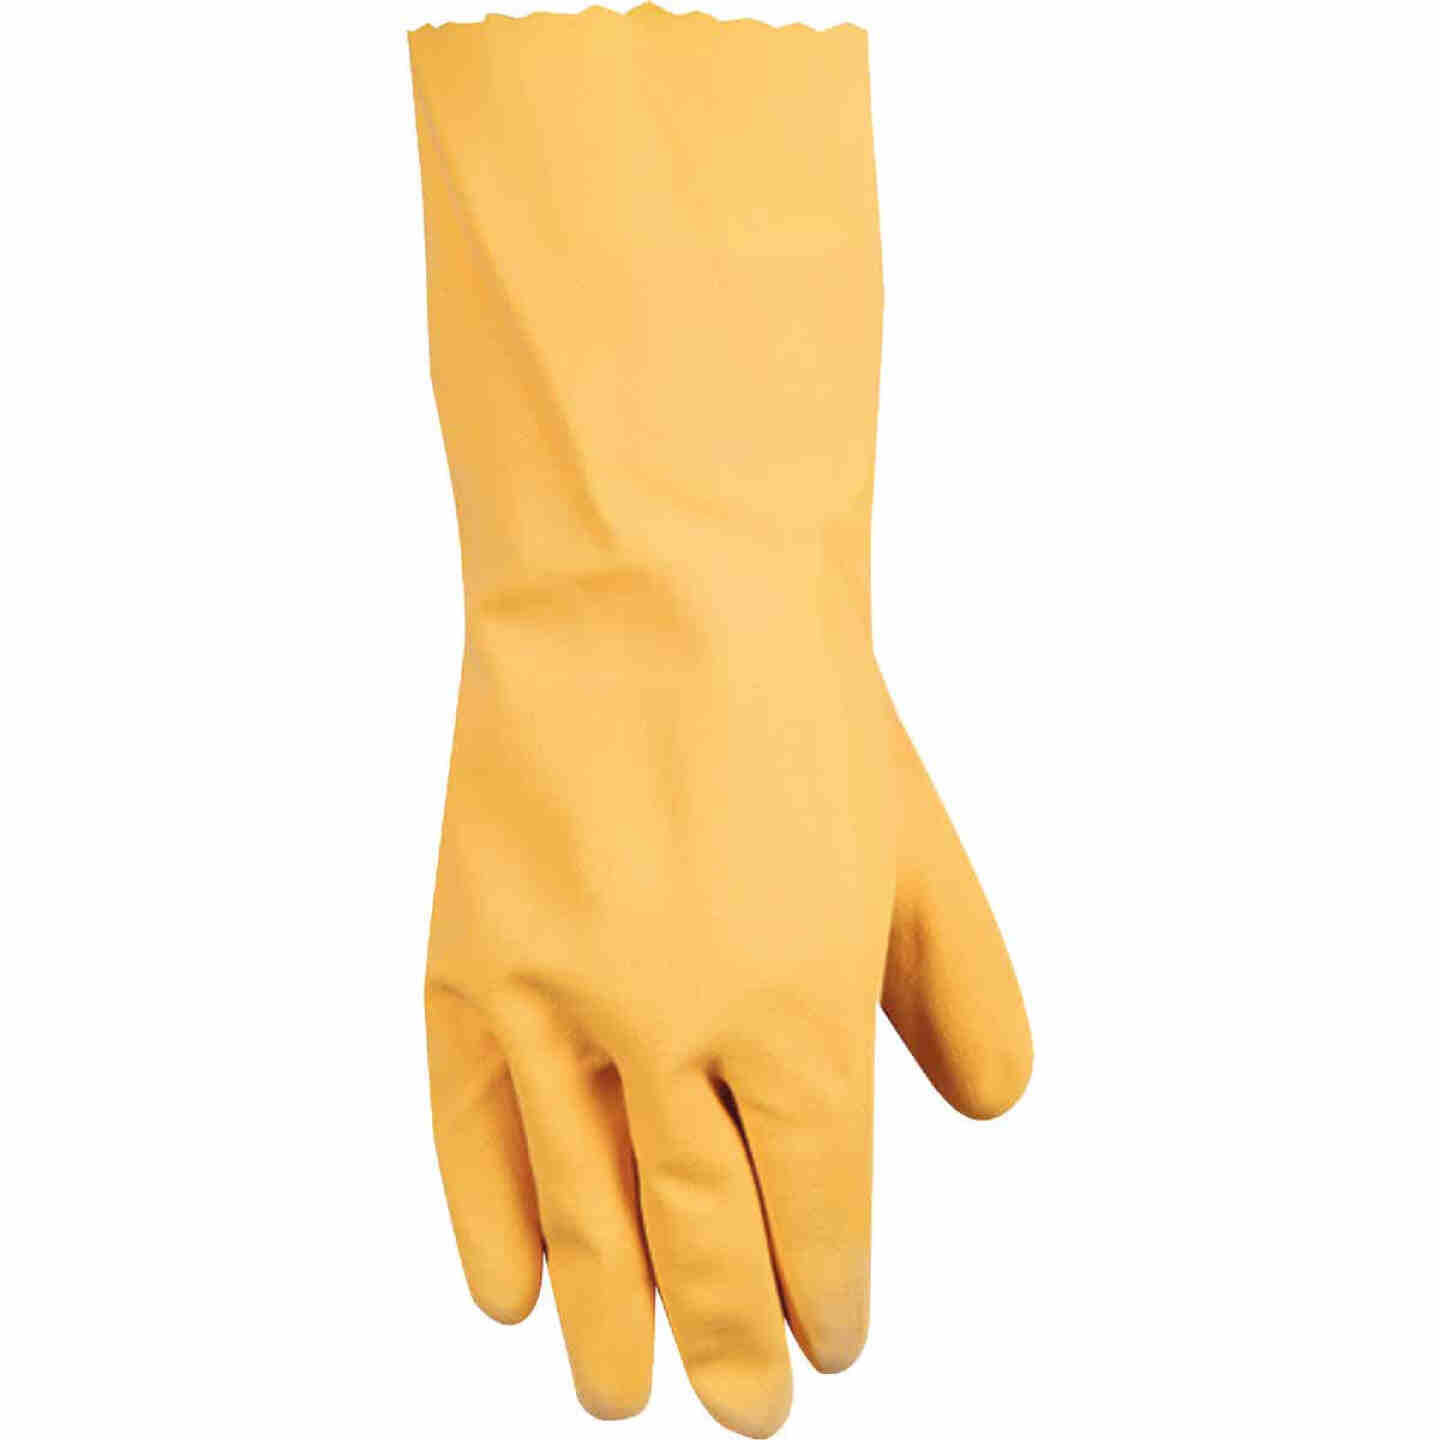 Wells Lamont Medium Latex Stripping Glove Image 3